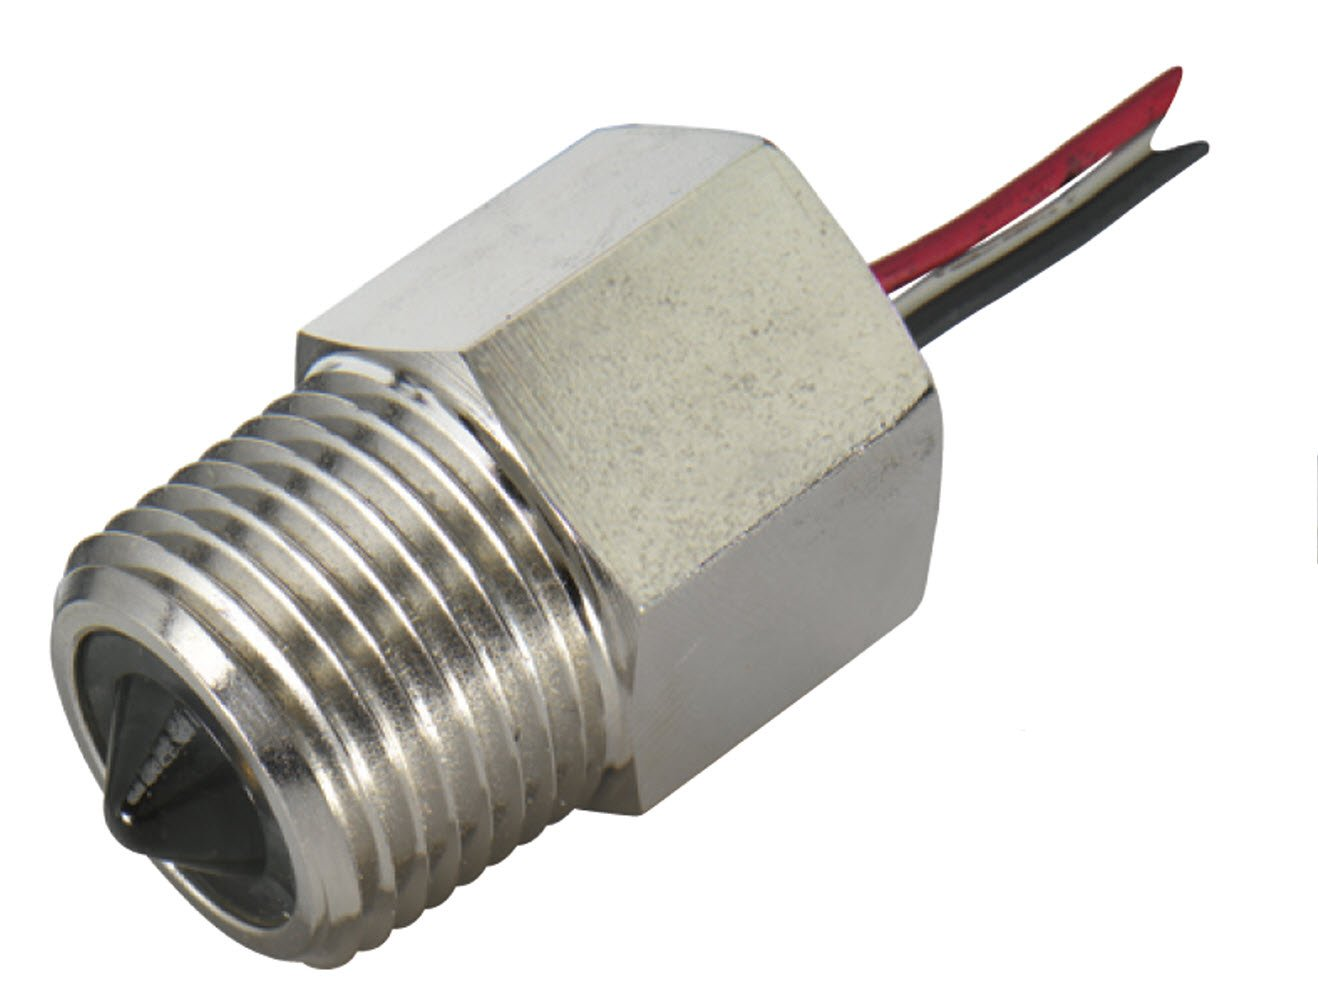 Gems Sensors 194471 Nickel Plated Steel Single Point Electro-Optic Level Switch with Wet Probe, 1/2'' NPT Male, 12 VDC, Normally Open